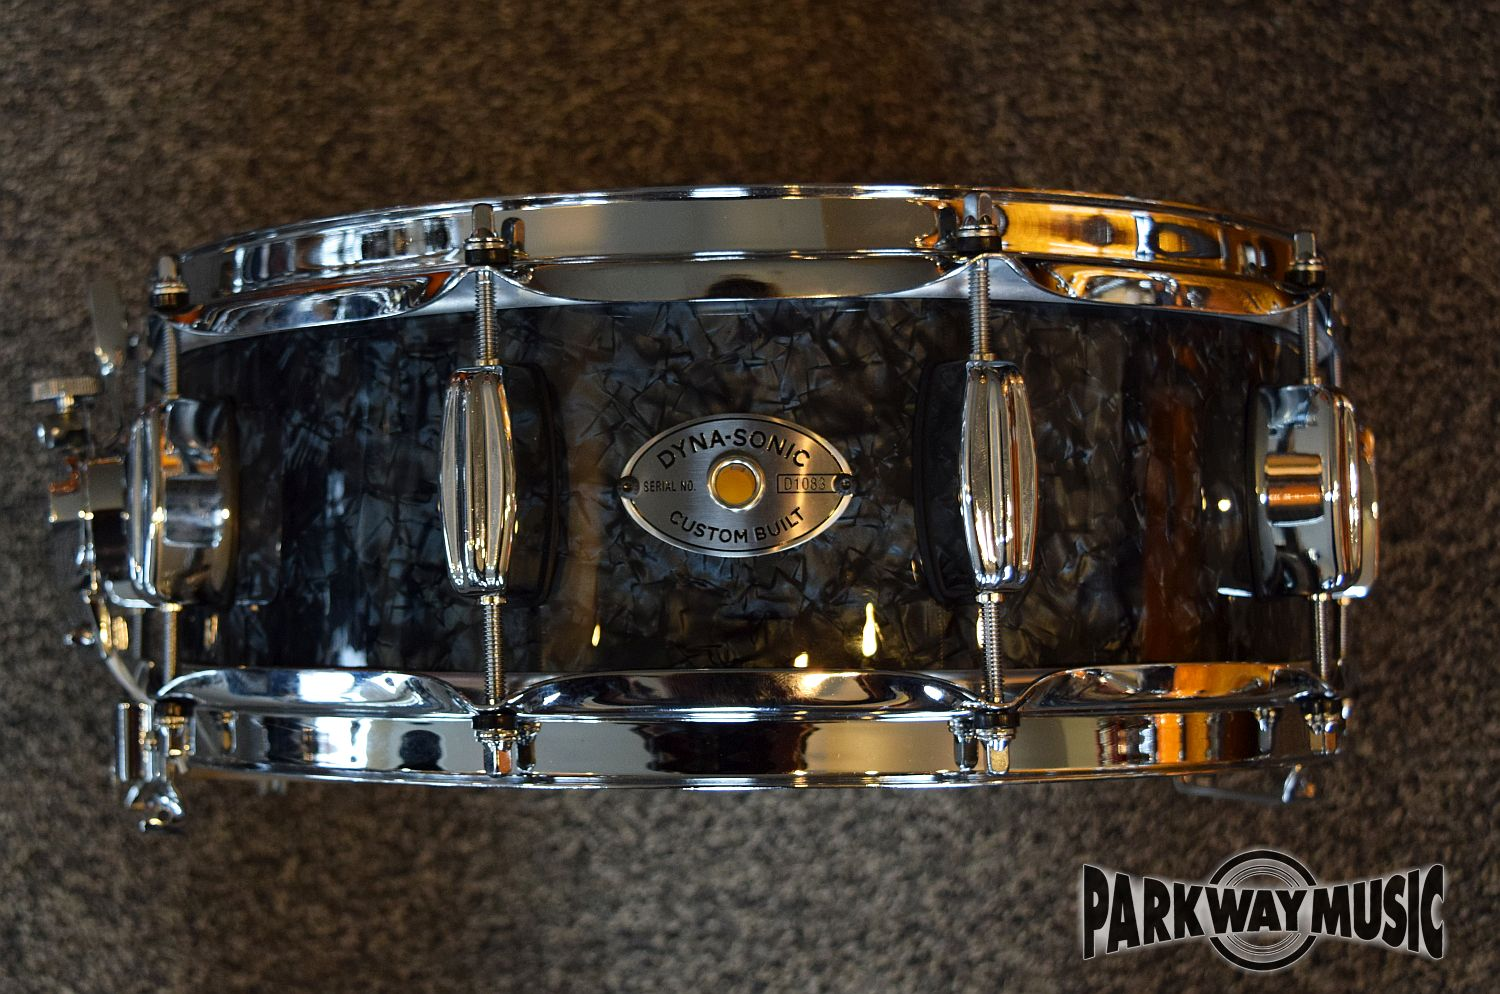 Rogers Wood Dynasonic 5 x 14 Snare in Black Diamond Pearl.